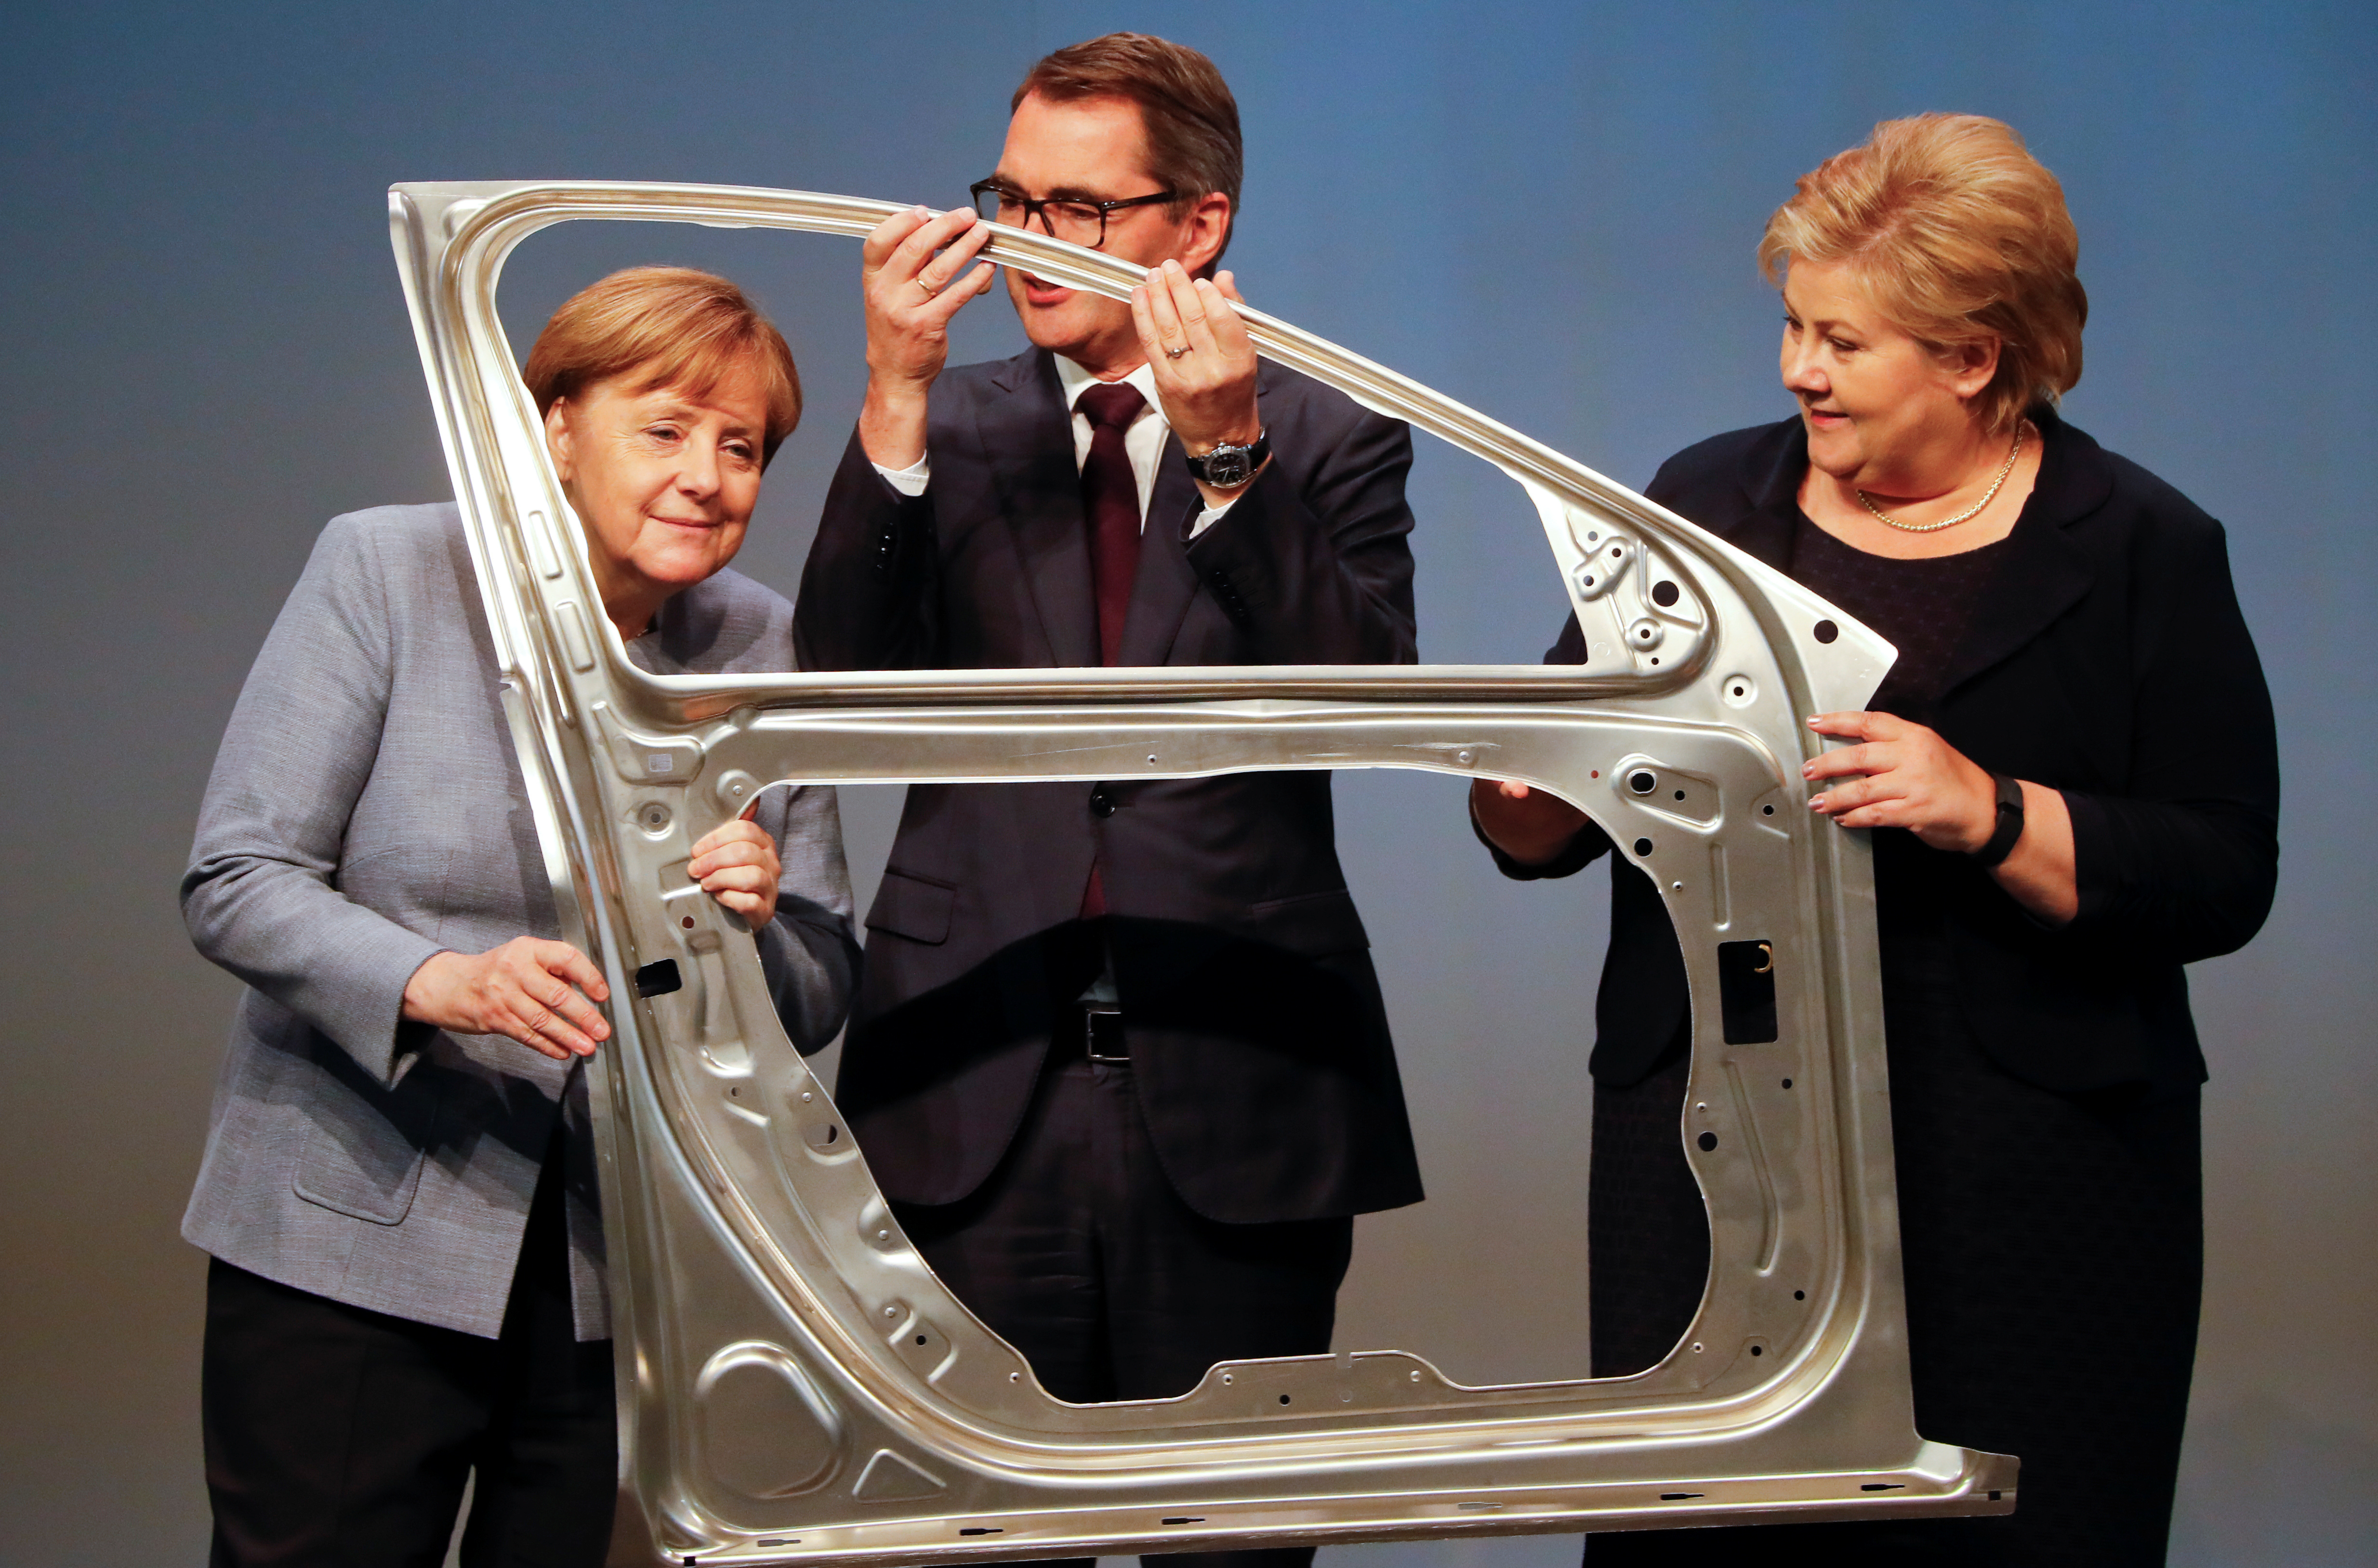 GREVENBROICH 2017-05-04 German Chancellor Angela Merkel, Svein Richard Brandtzaeg, President and Chief Executive Officer of Rolled Products and Norwegian Prime Minister Erna Solberg are seen during the official opening of a production line for the car industry at a branch of Norway's Hydro aluminum company in Grevenbroich, Germany May 4, 2017. REUTERS/Wolfgang Rattay TPX IMAGES OF THE DAY Photo: / REUTERS / TT / kod 72000